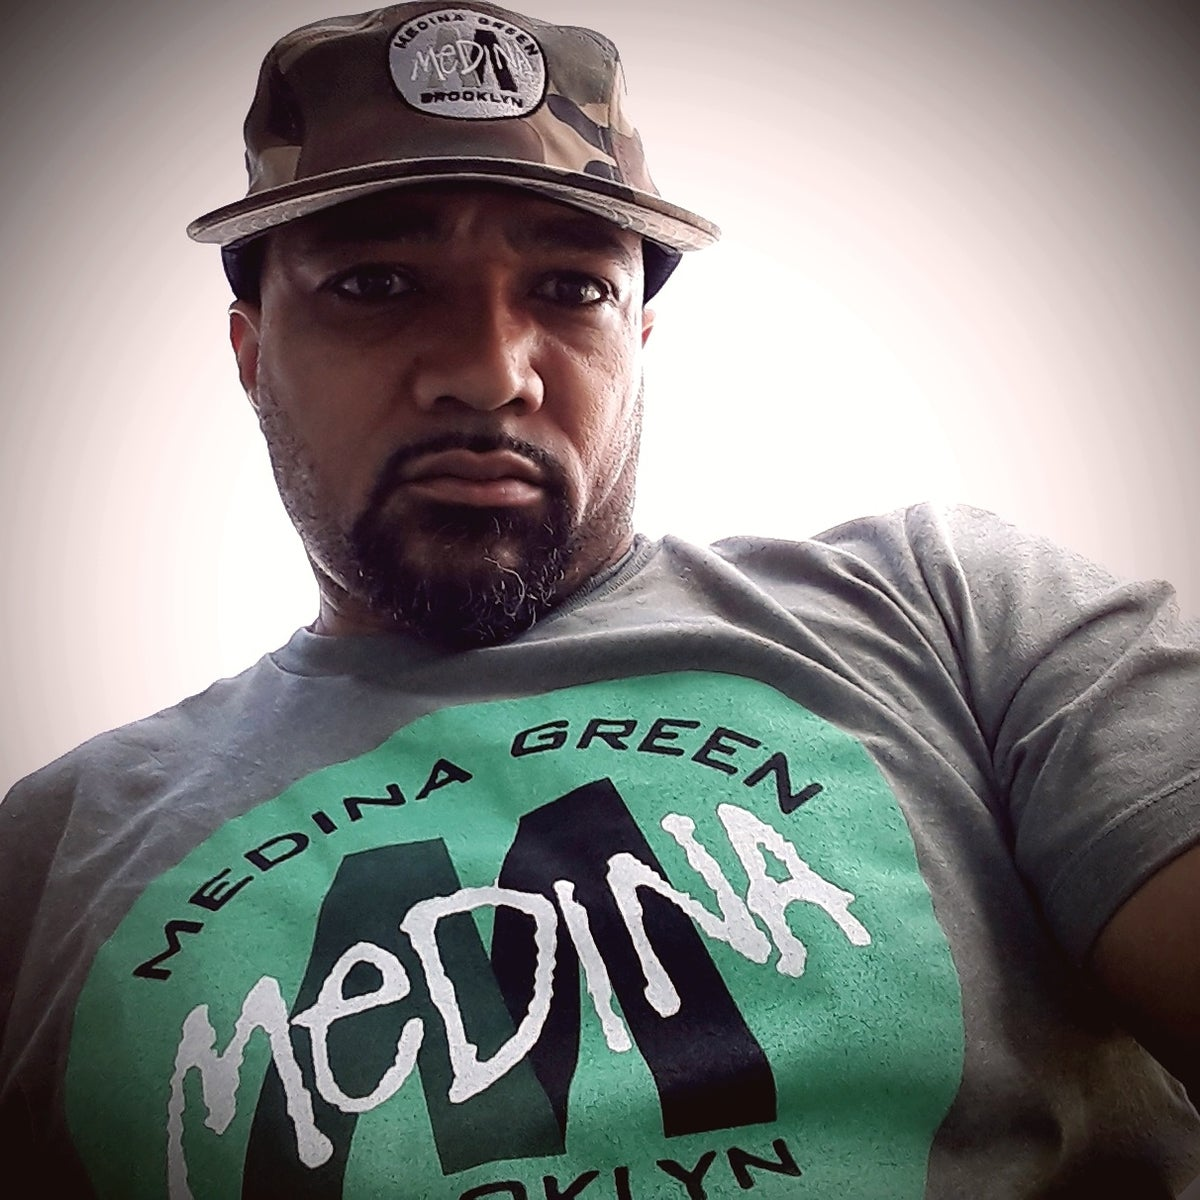 Image of Medina Green Core logo tee